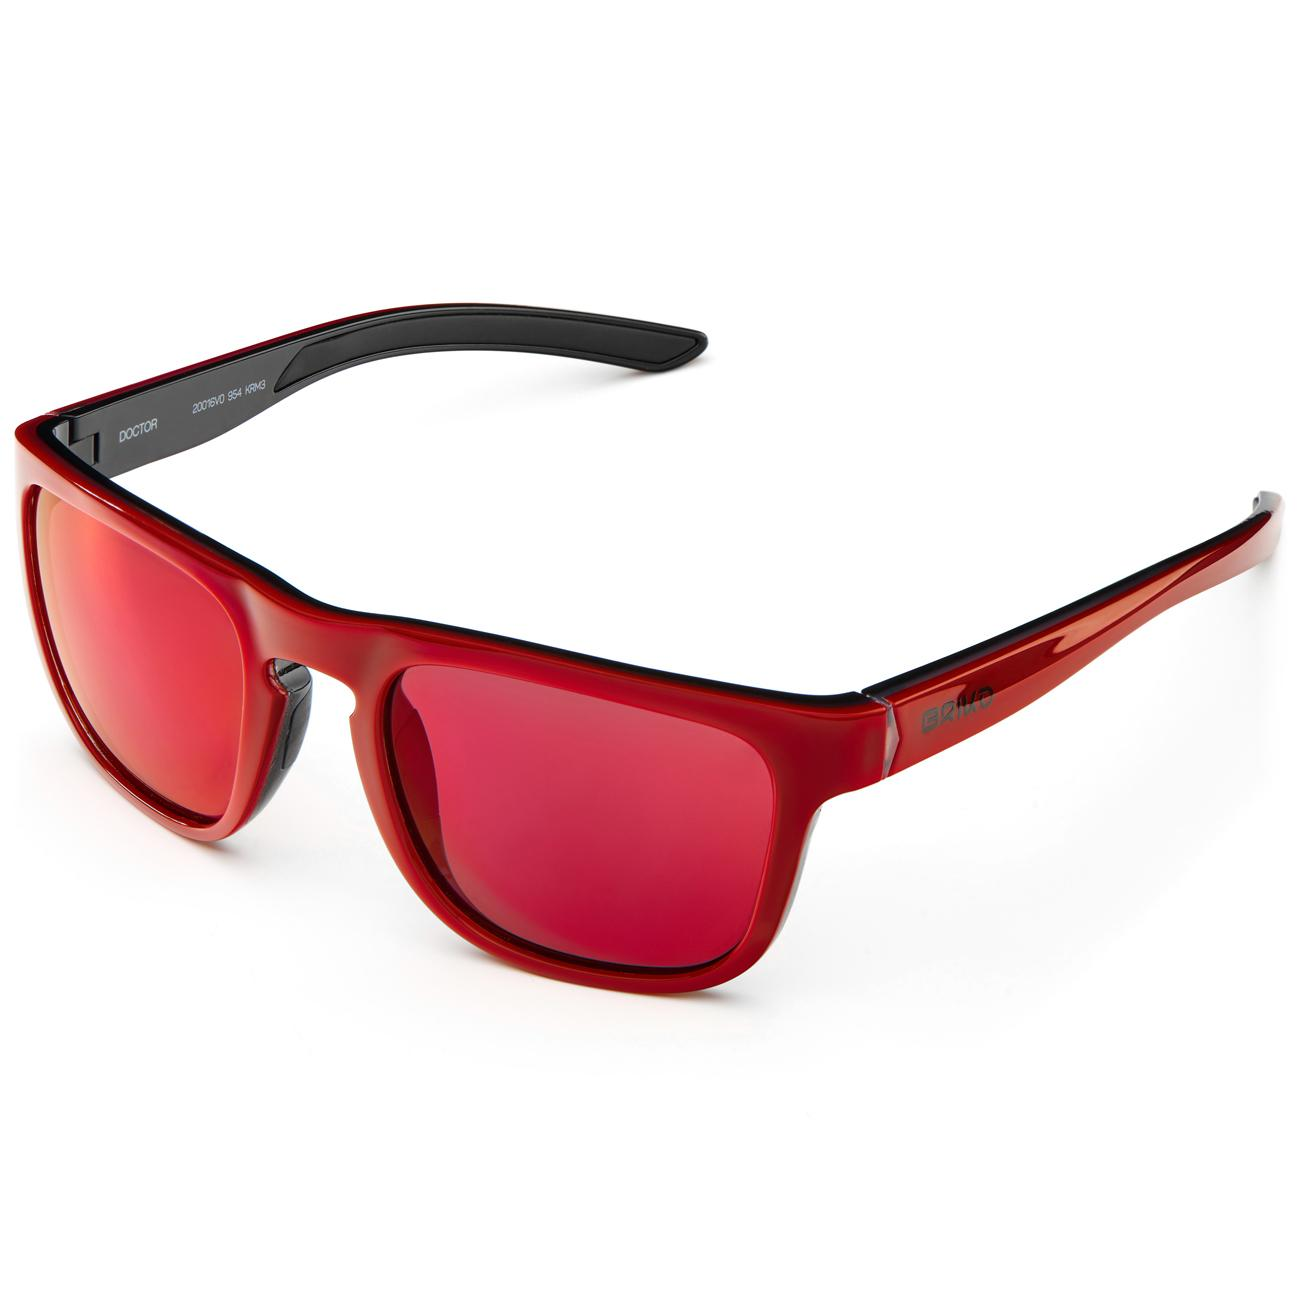 Afbeelding Briko Casual zonnebril unisex Rood - Doctor Mirror Color HD Sunglasses Sh Mt Cry Red -Krm3